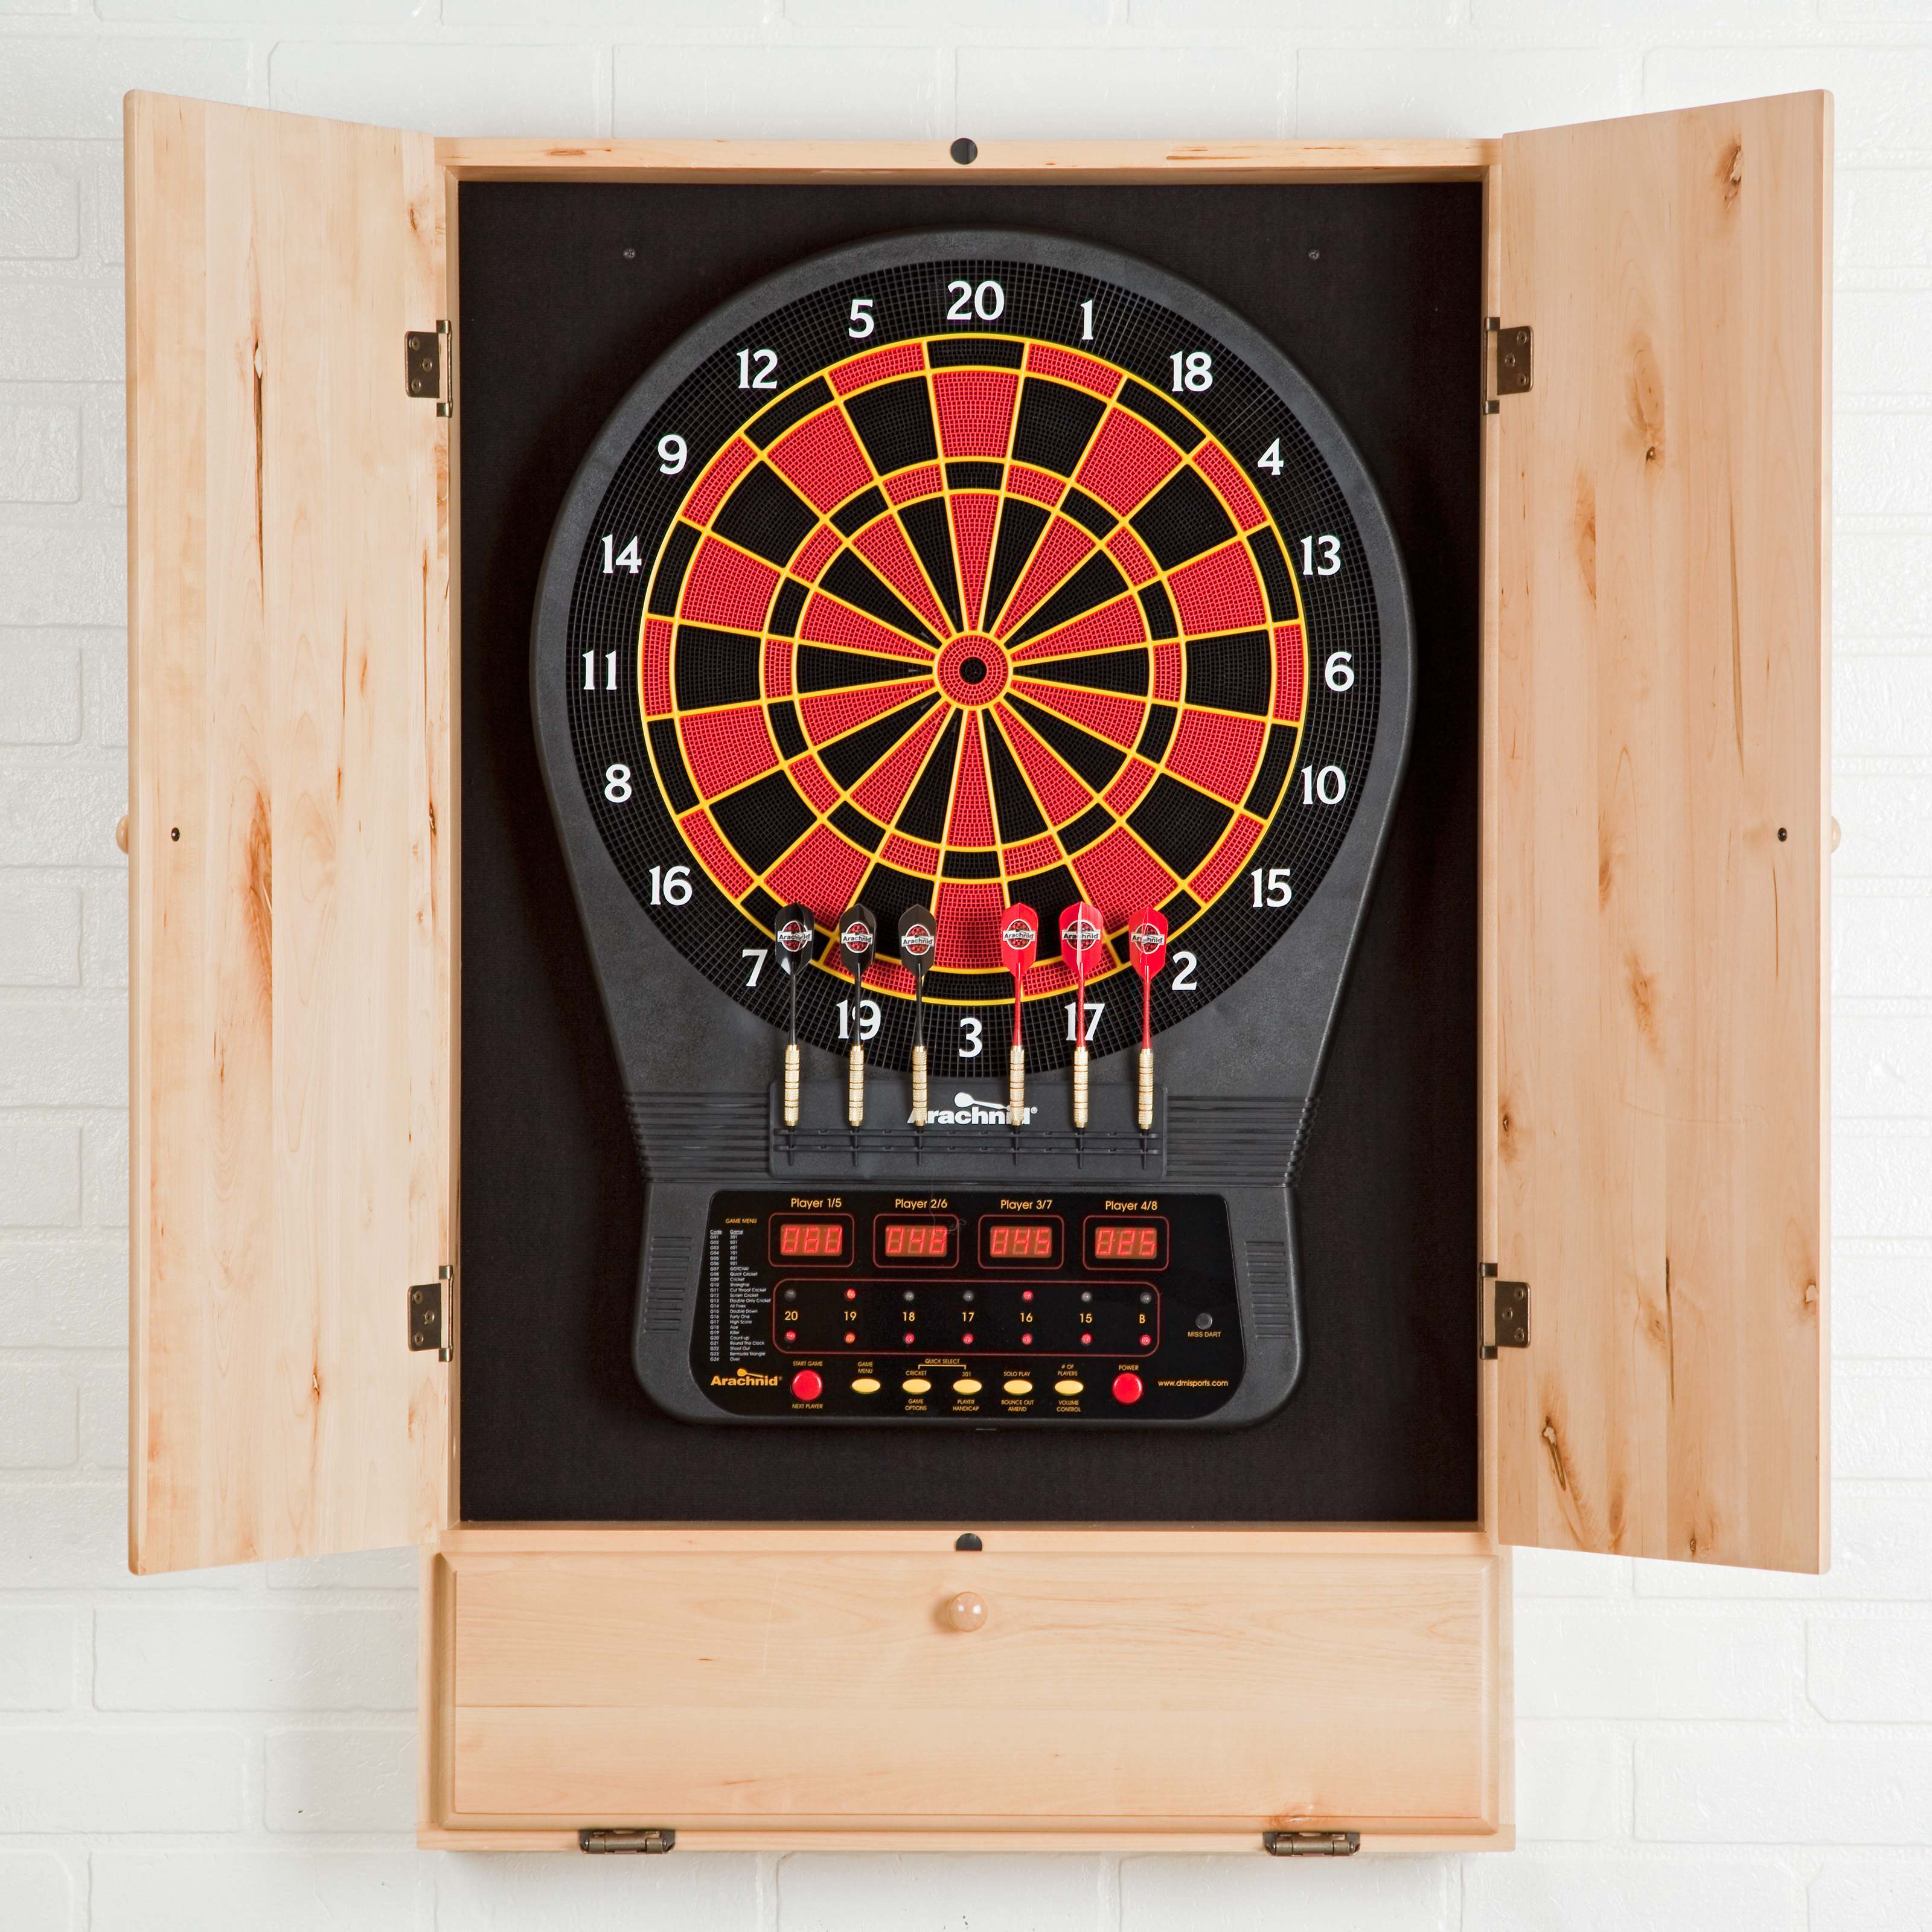 arachnid cricketpro 650 electronic dartboard with cabinet electronic dart boards at hayneedle